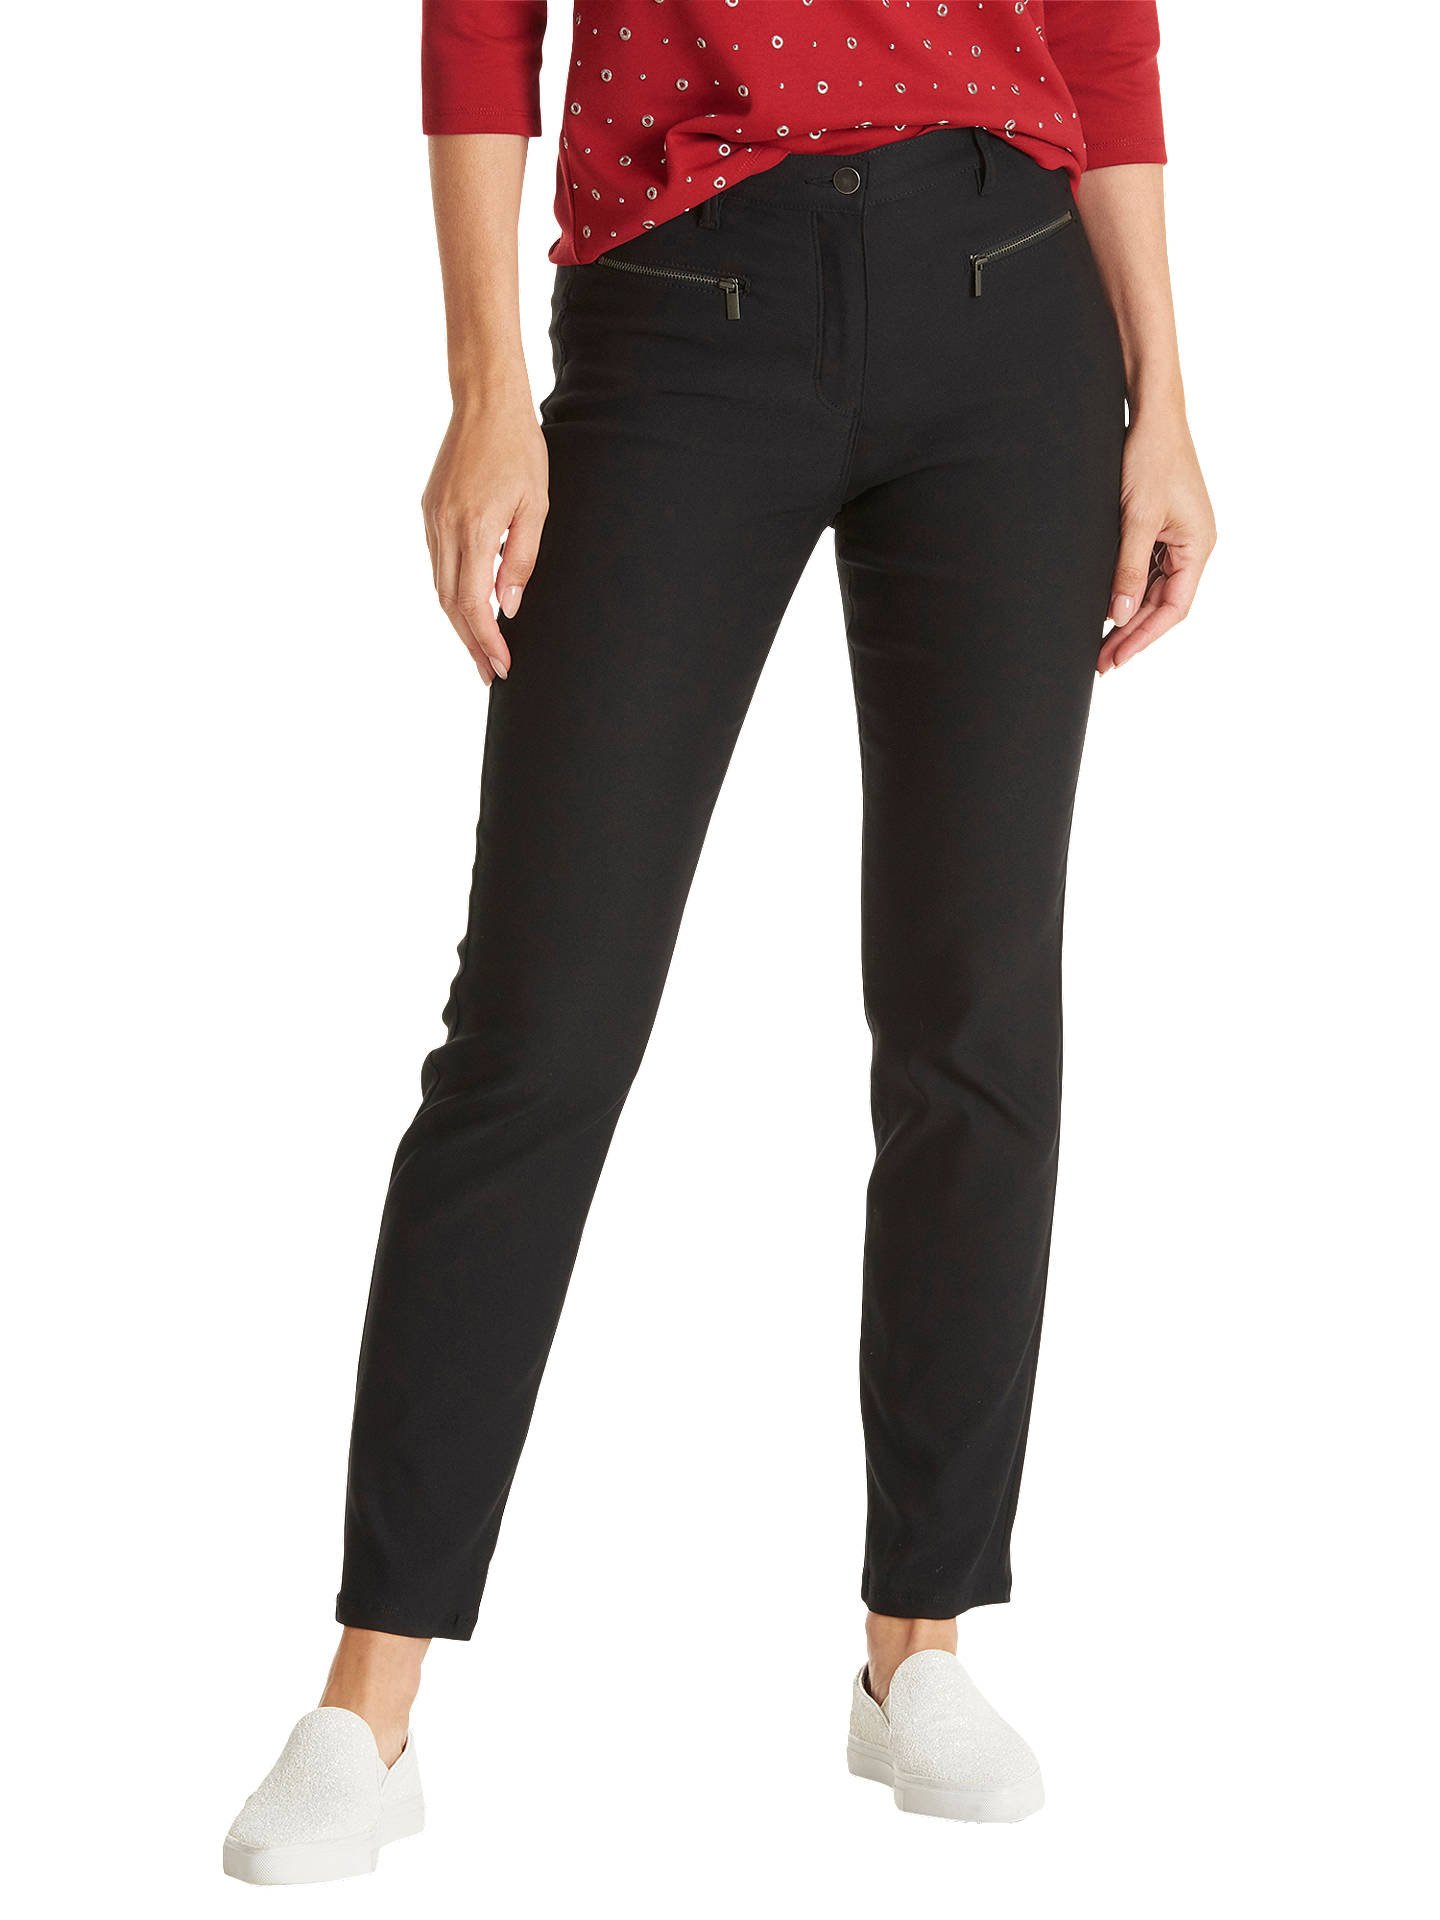 Buy Betty Barclay Slim Fit Casual Trousers, Black, 10 Online at johnlewis.com